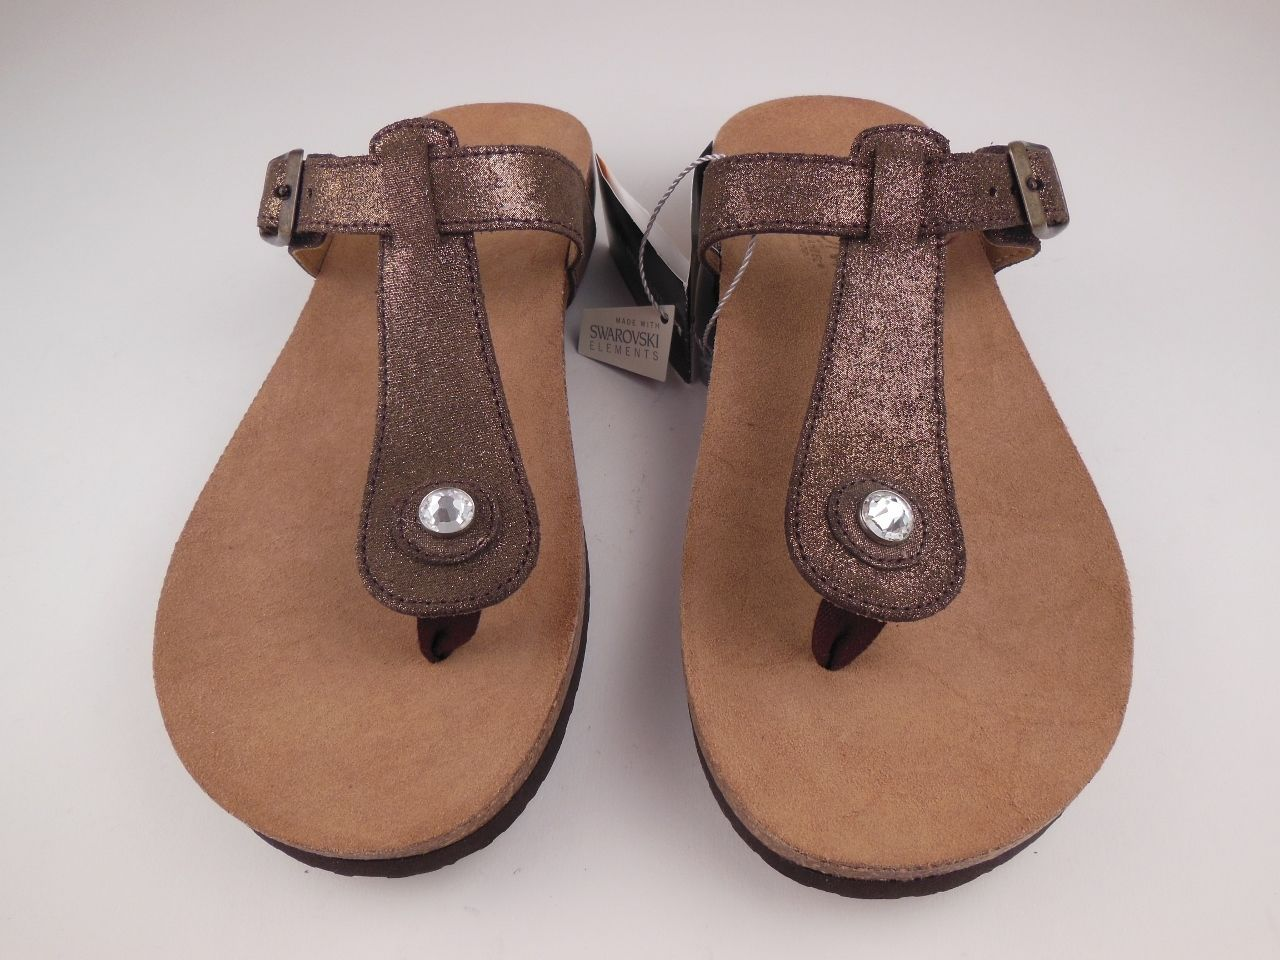 Orthaheel Vionic Mary Brown Glitter Leather Thong Sandals Sz 8 M   eBay